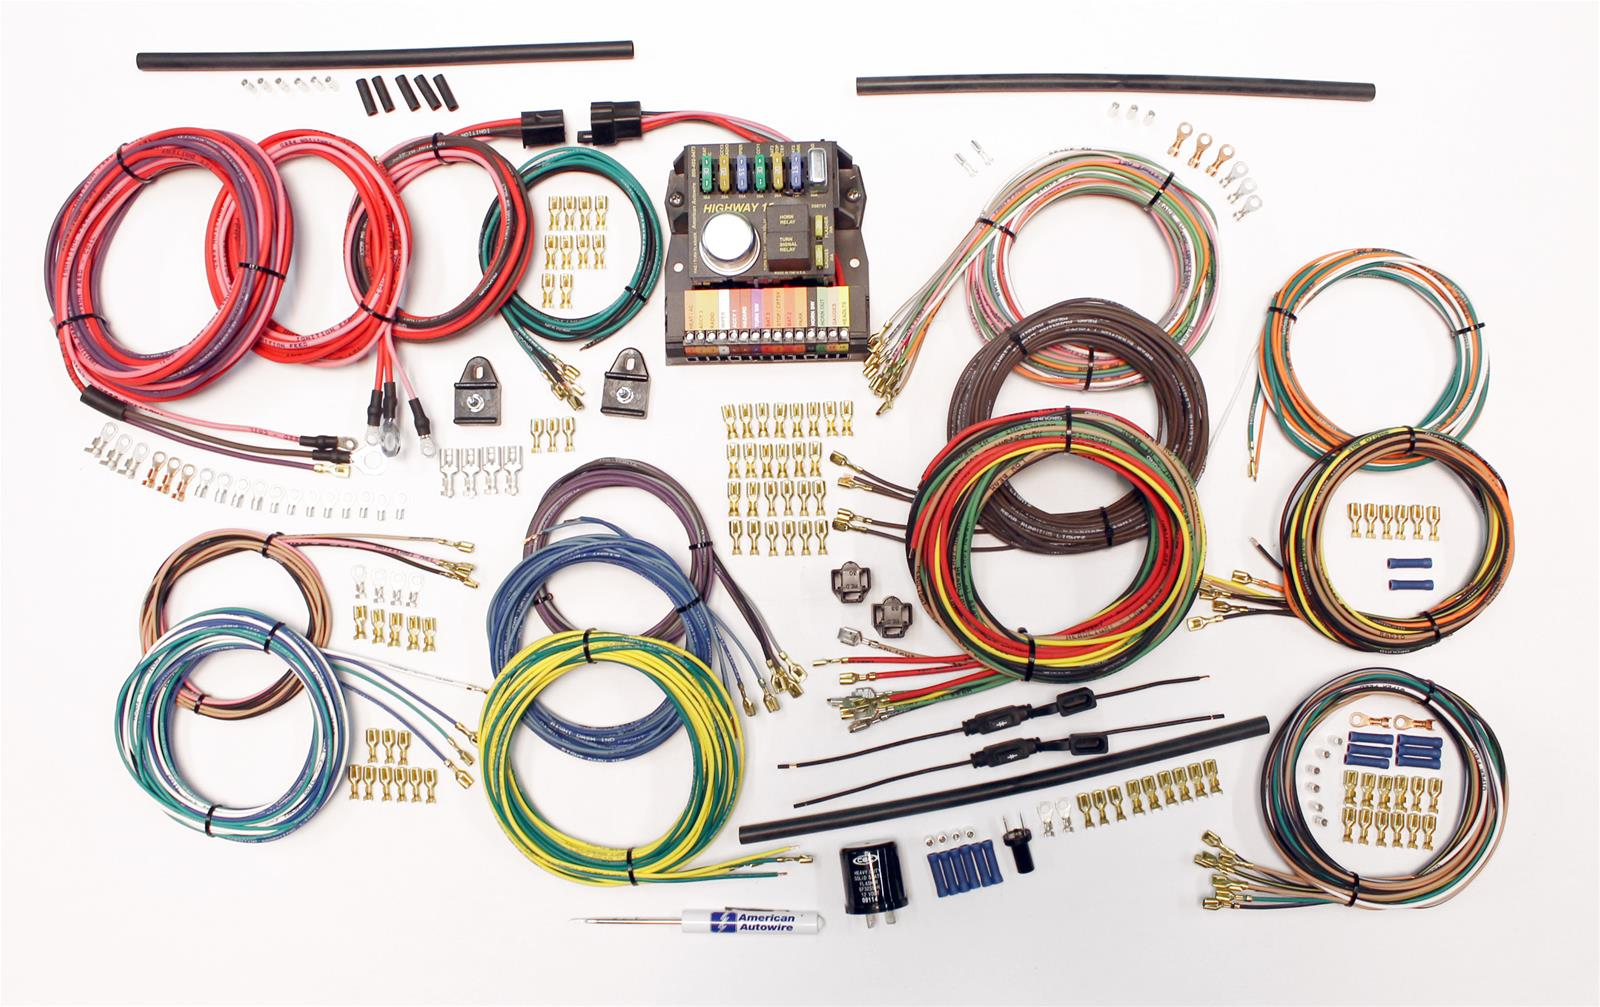 hight resolution of american autowire classic update series wiring harness kits 510419 free shipping on orders over 99 at summit racing